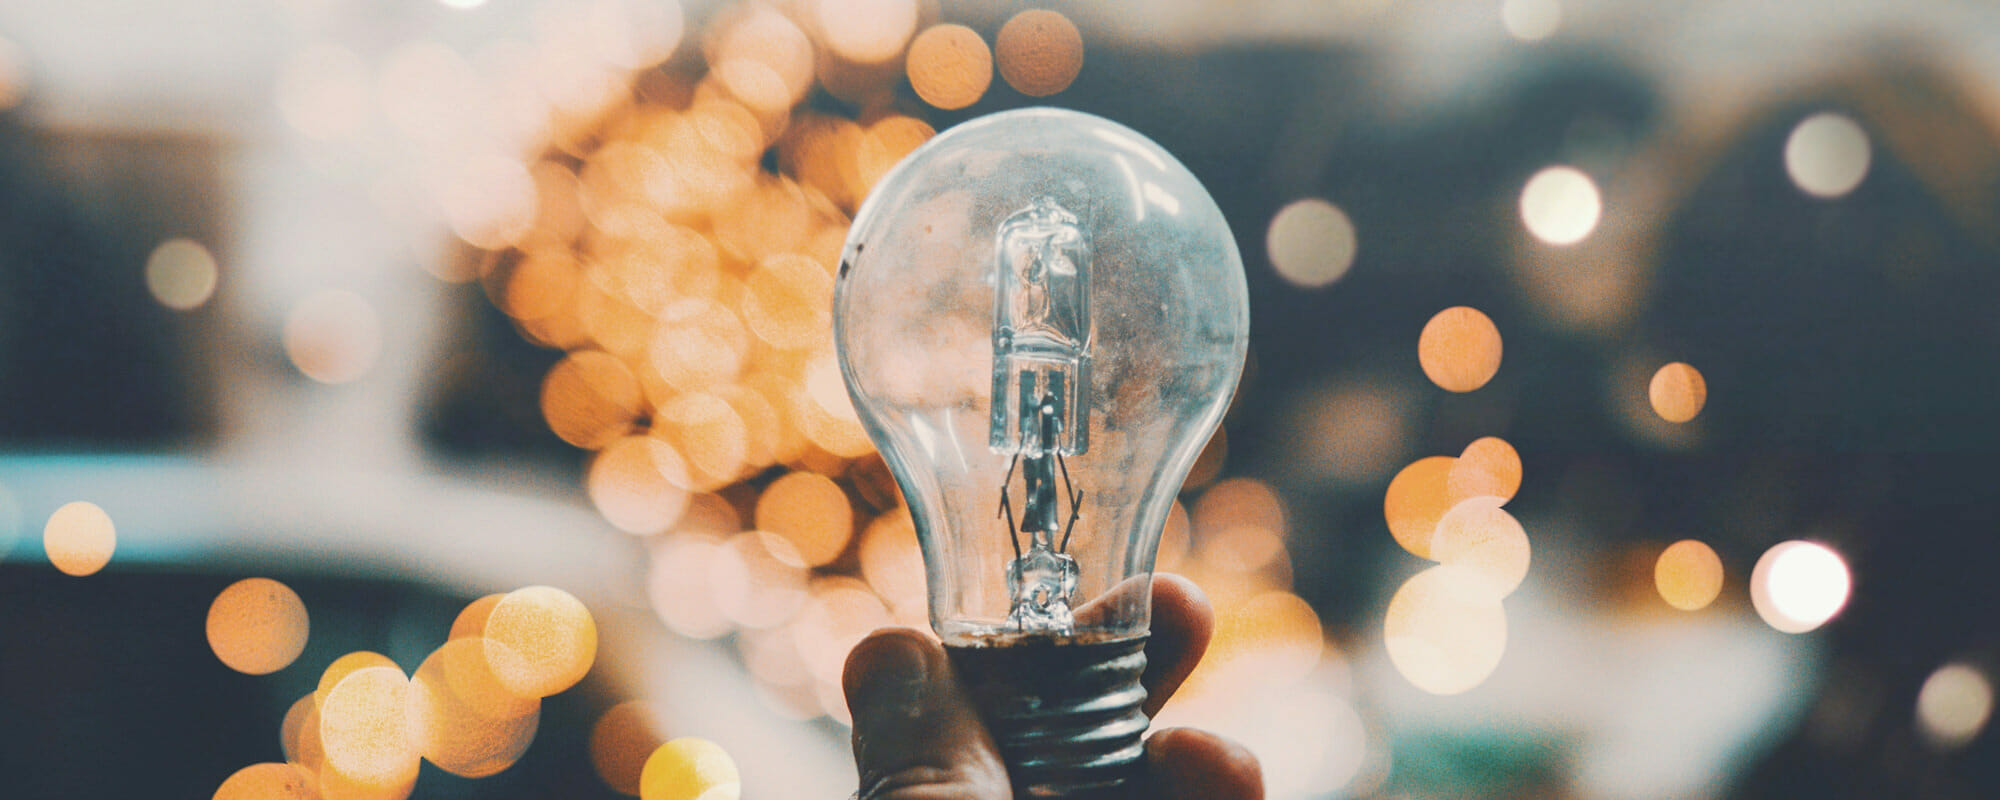 Innovation Center: Image of reflections on a light bulb